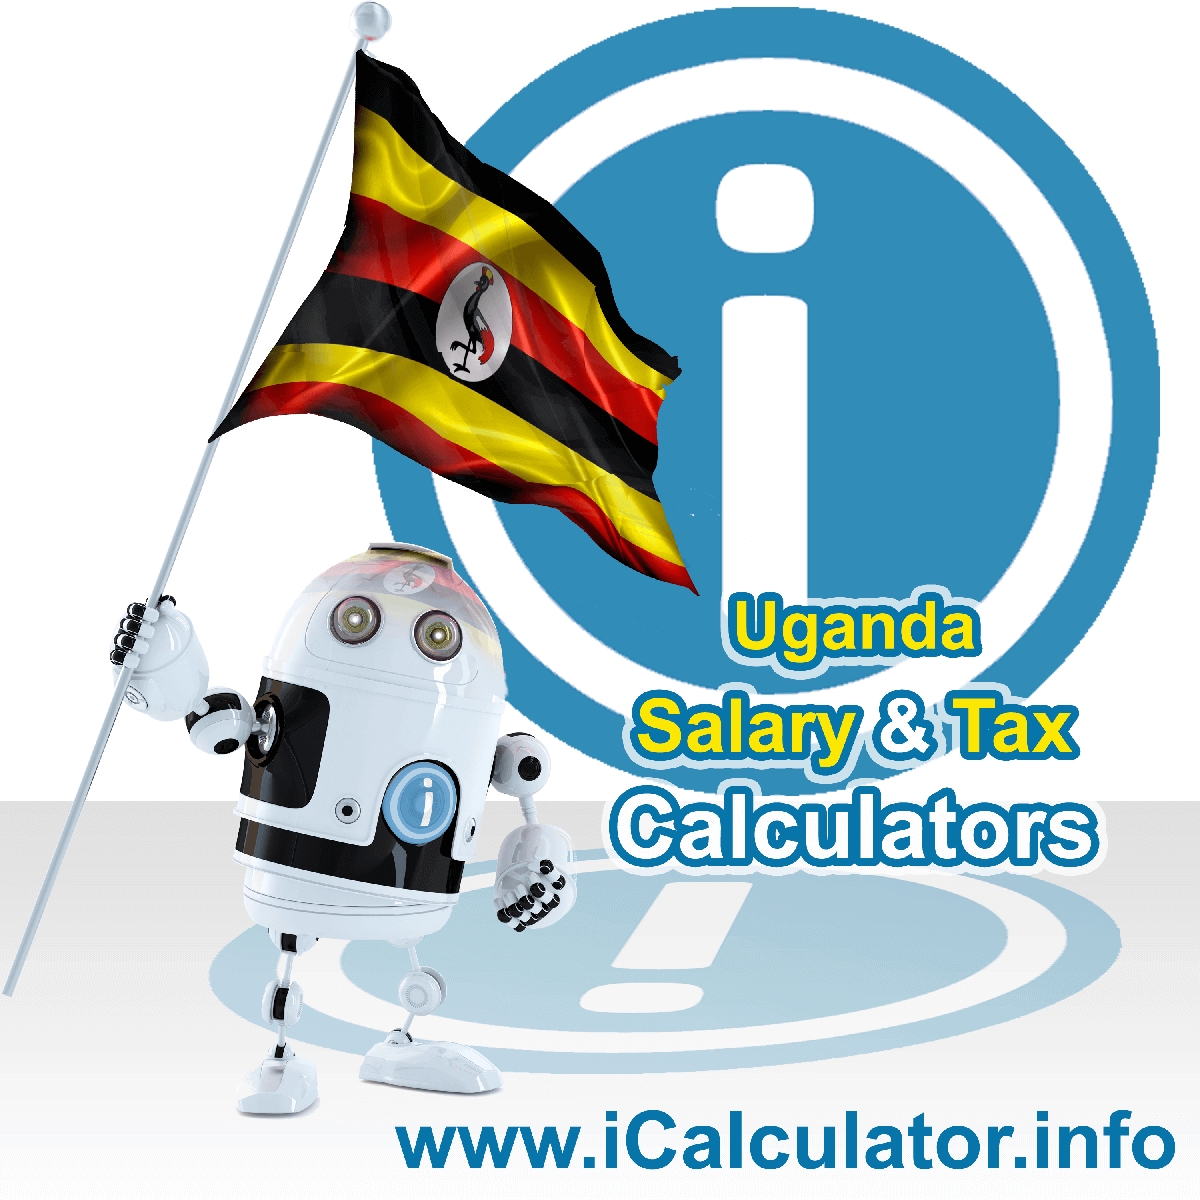 Uganda Wage Calculator. This image shows the Uganda flag and information relating to the tax formula for the Uganda Tax Calculator